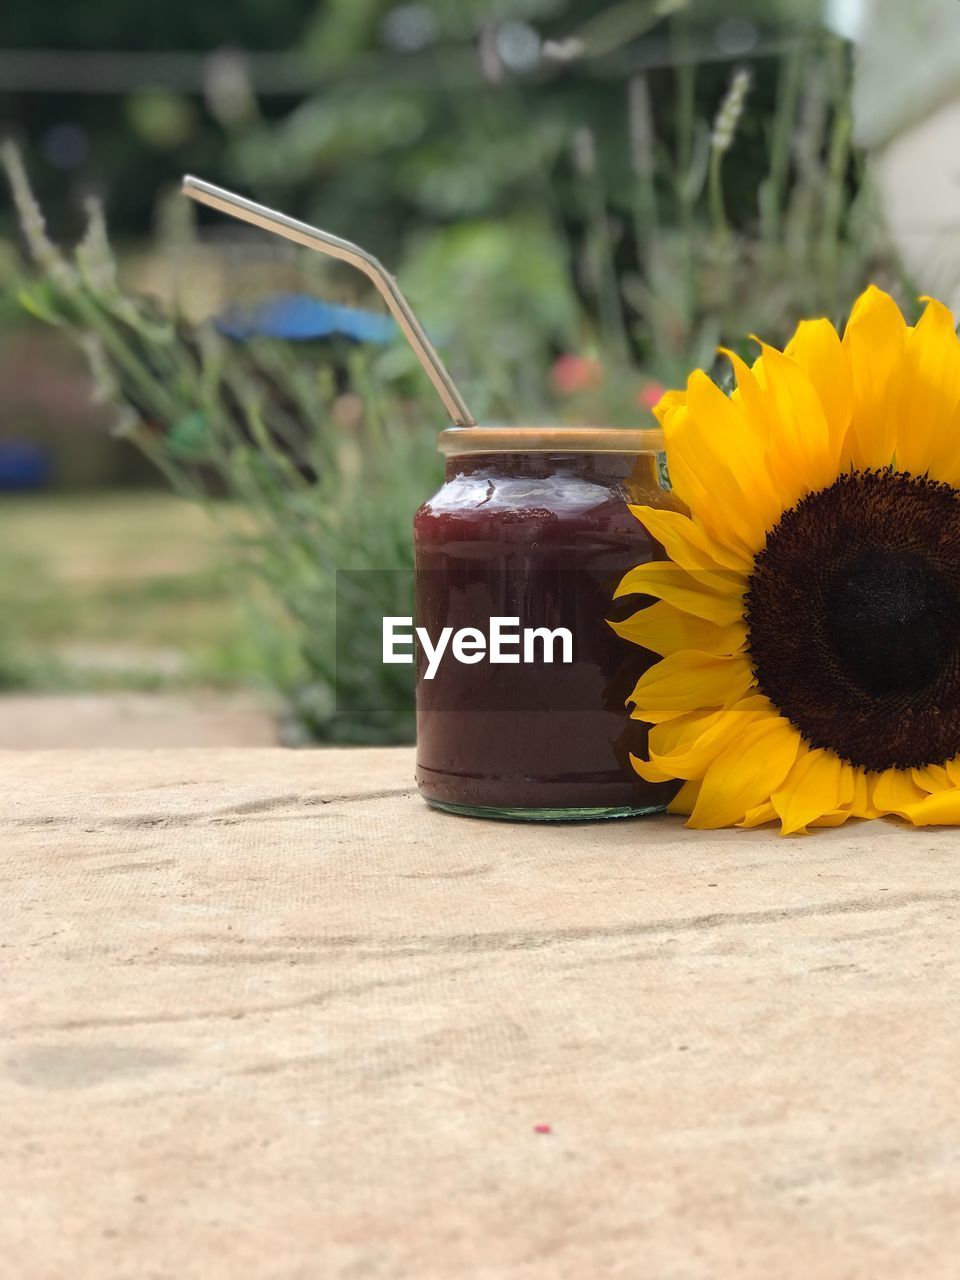 flower, flowering plant, plant, yellow, freshness, container, close-up, nature, flower head, petal, table, no people, fragility, vulnerability, focus on foreground, beauty in nature, growth, day, inflorescence, sunflower, outdoors, temptation